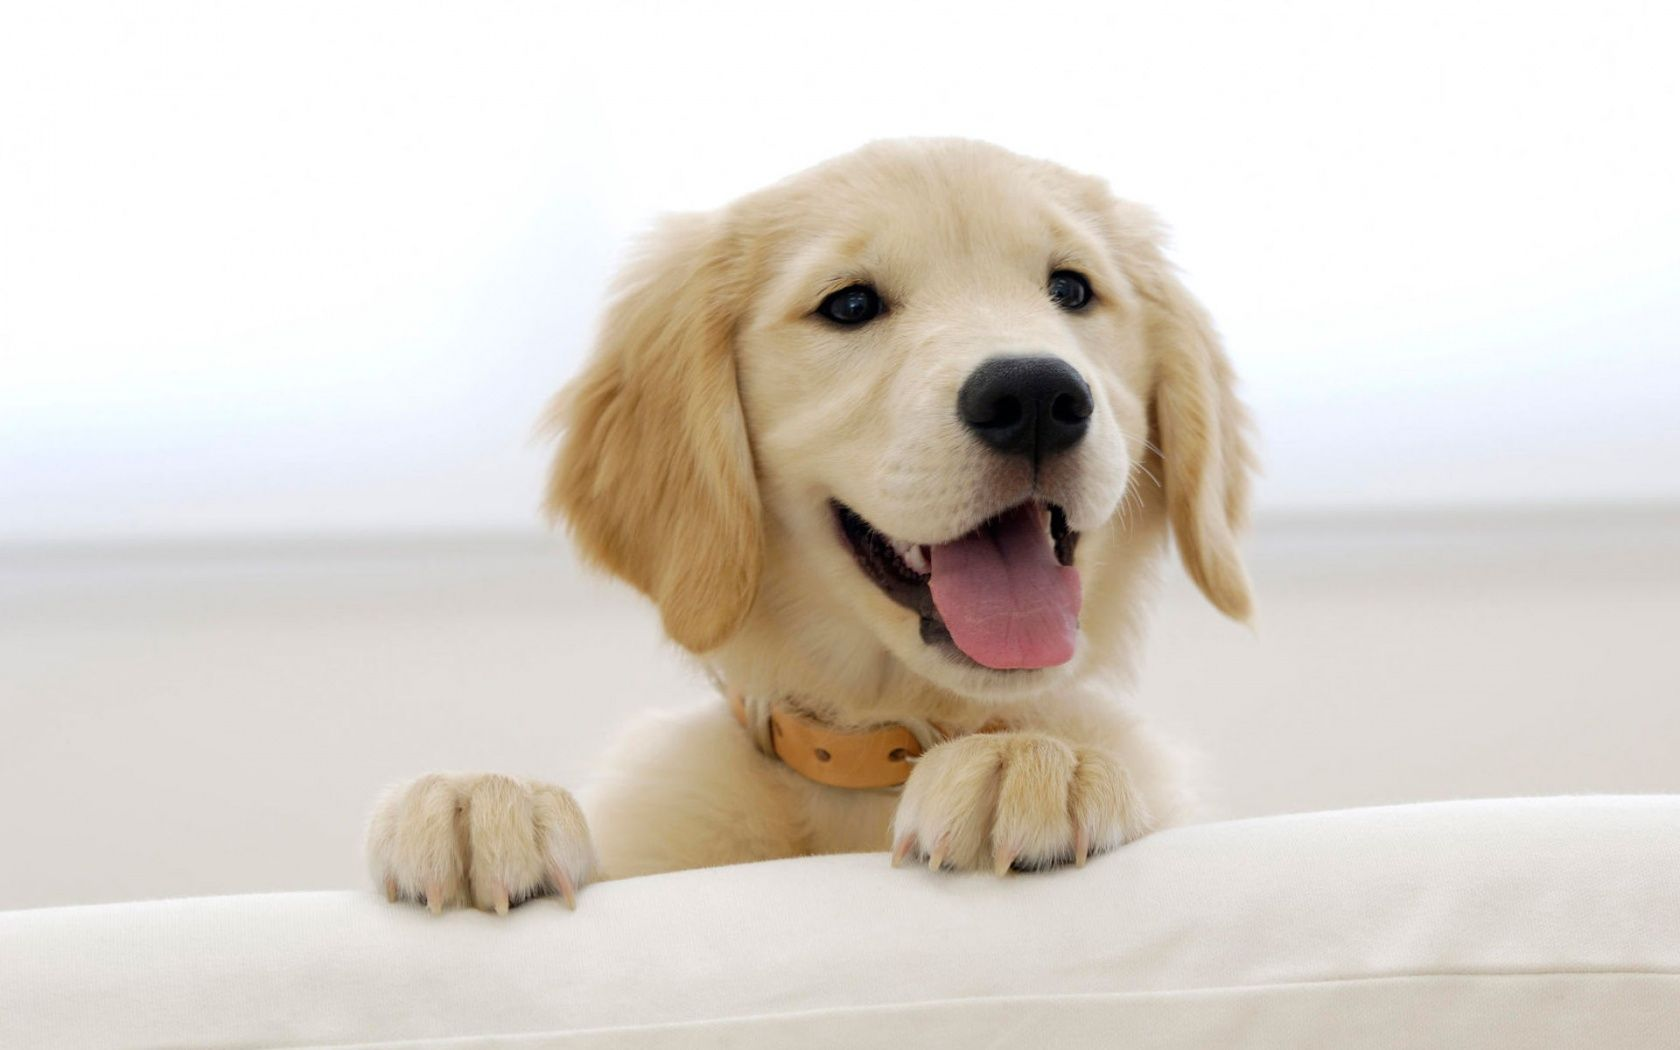 image detail for -description: free download golden retriever puppy